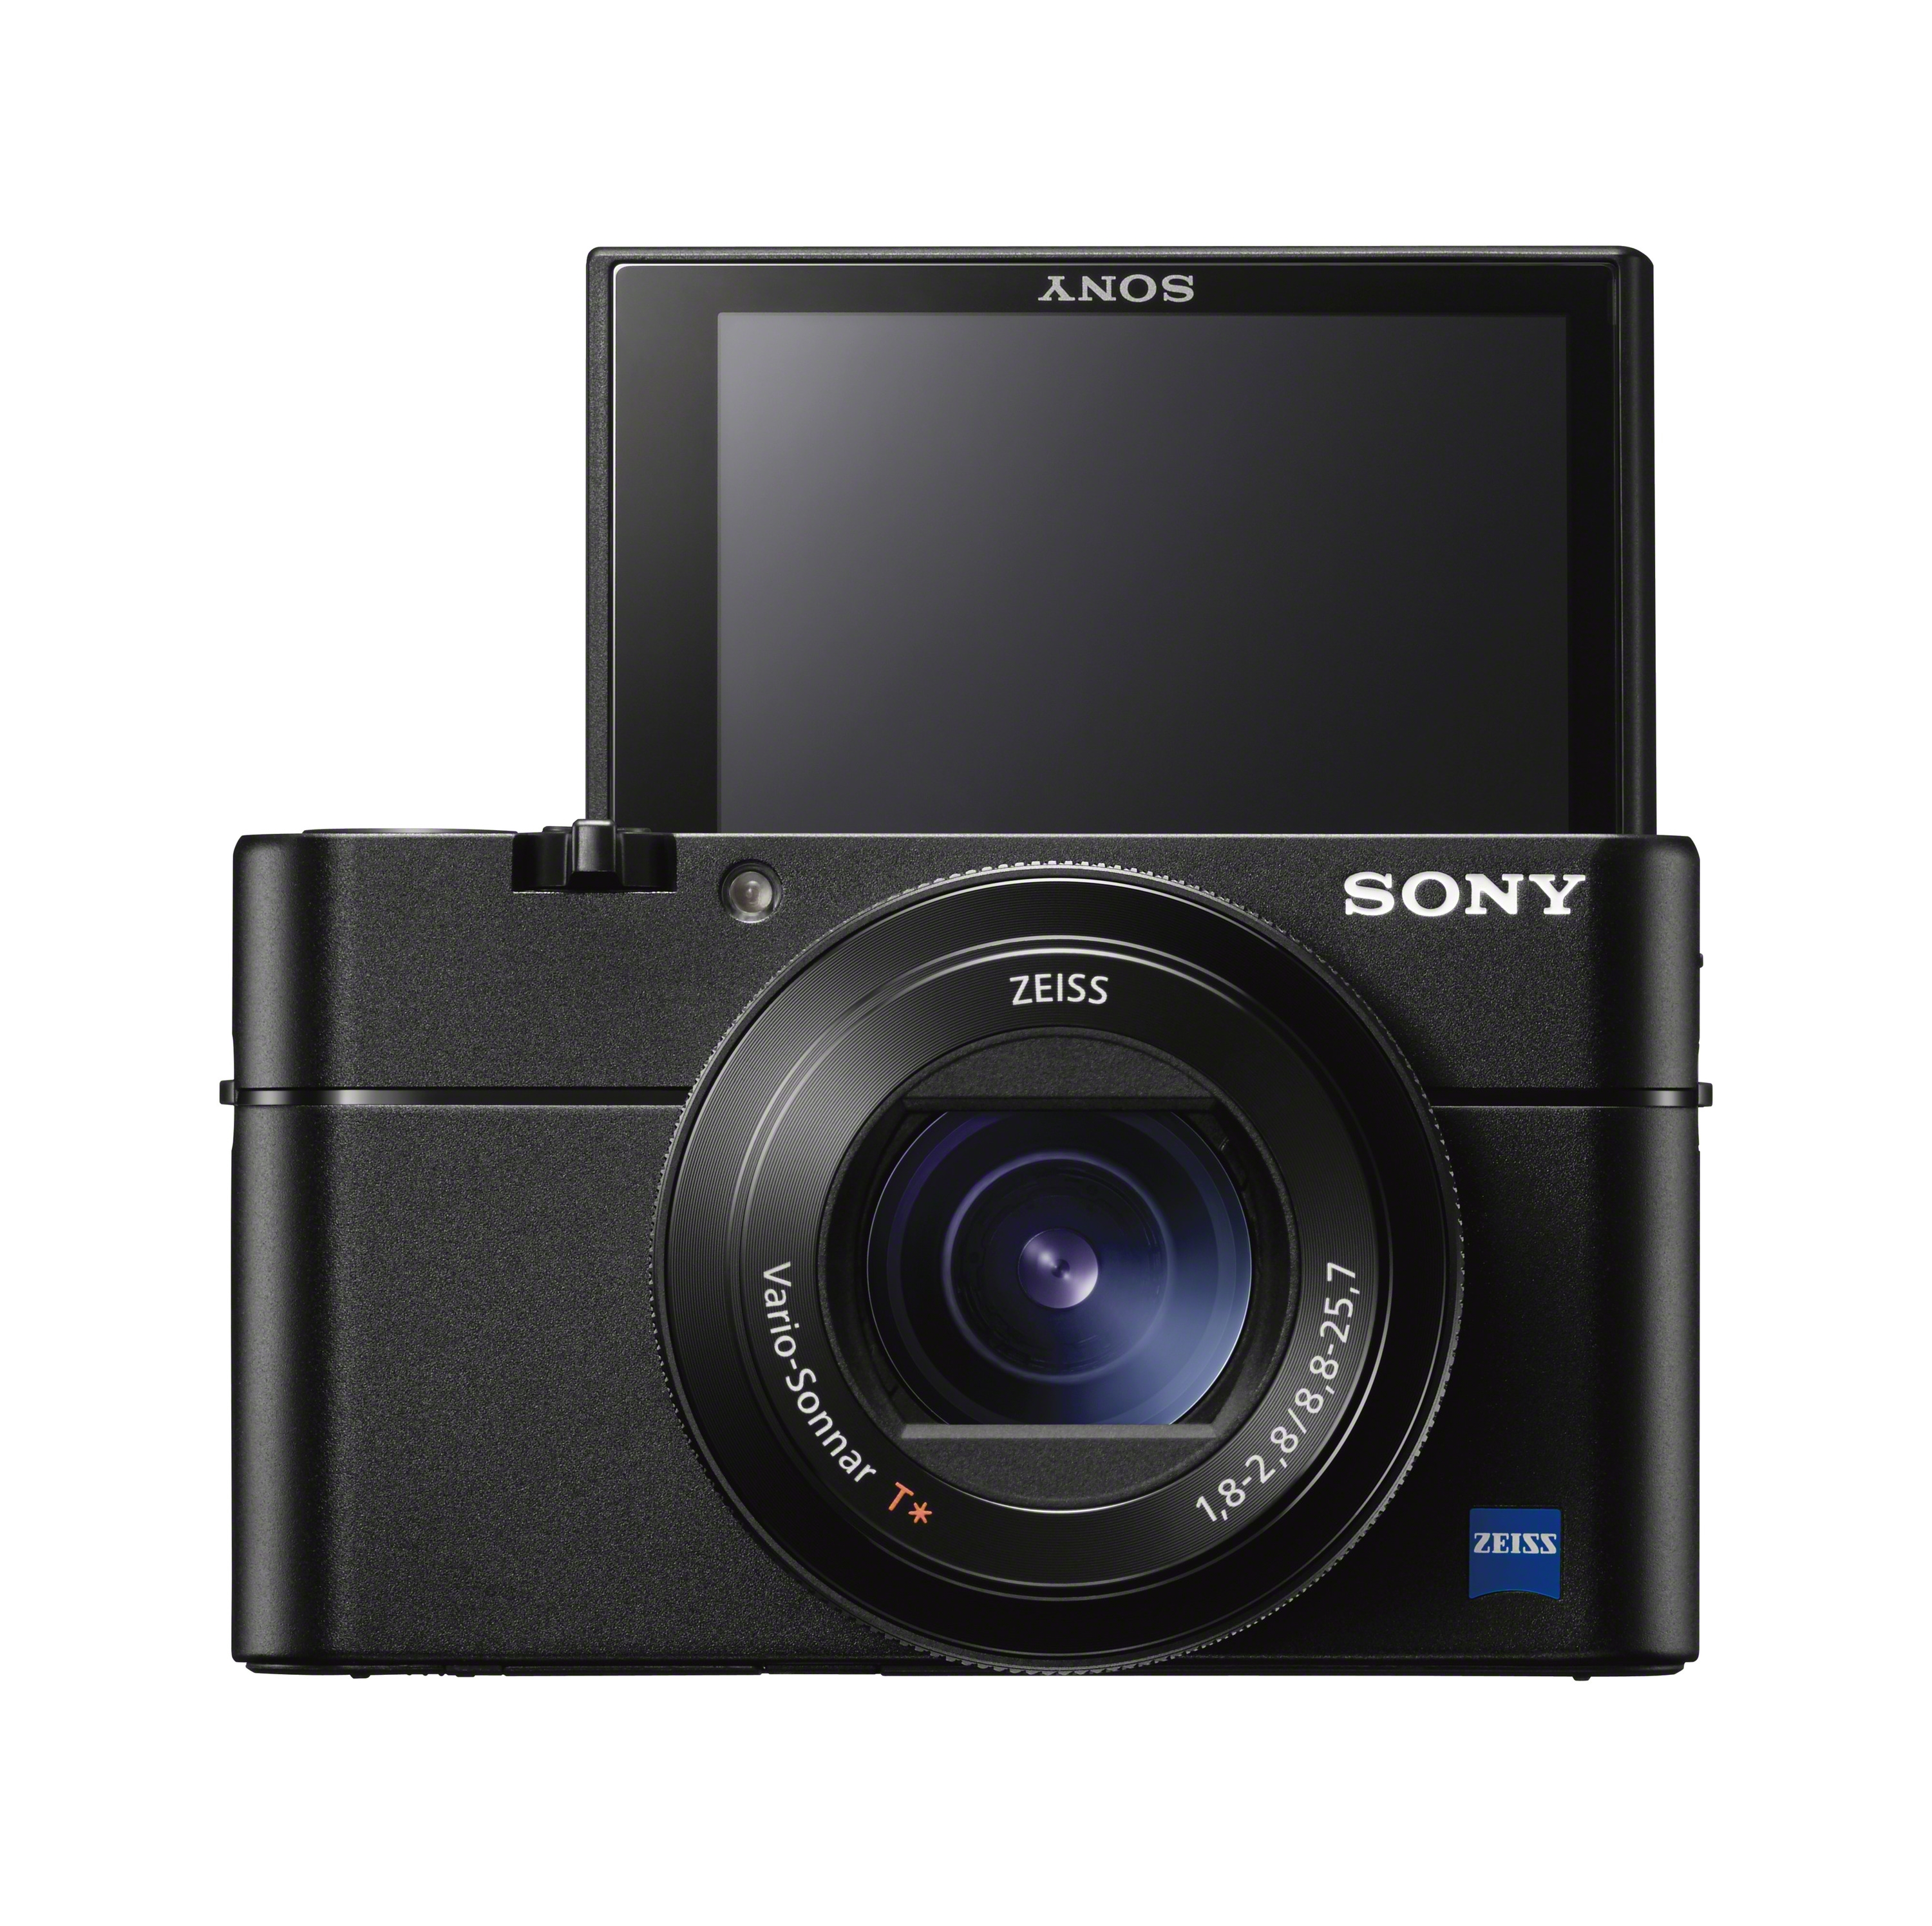 jeffontheroad-gift-ideas-photographers-youtubers-sony-rx100-v